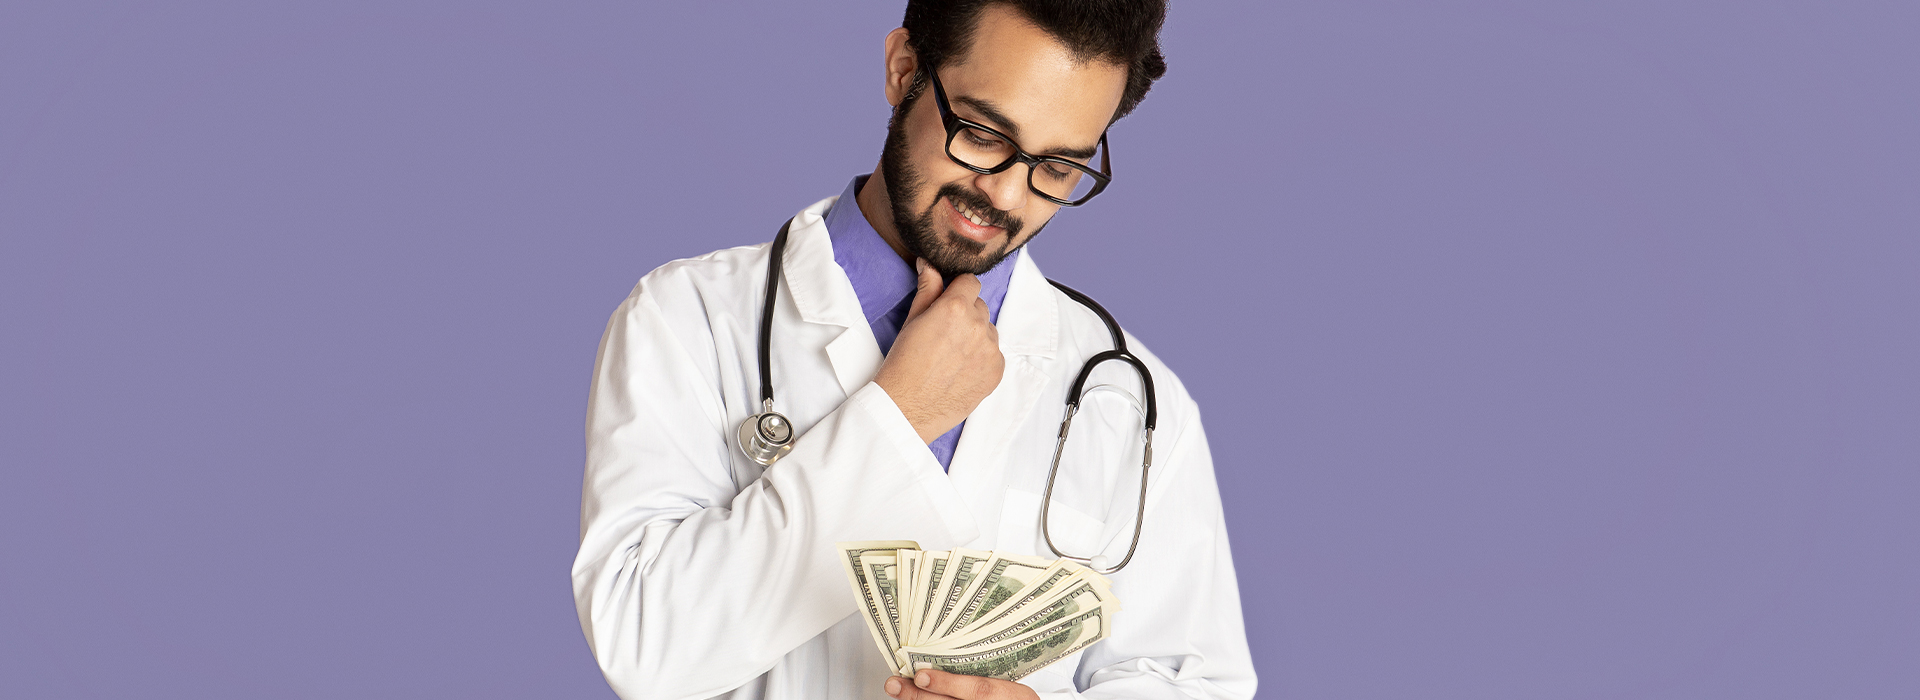 Male nurse looking at his salary